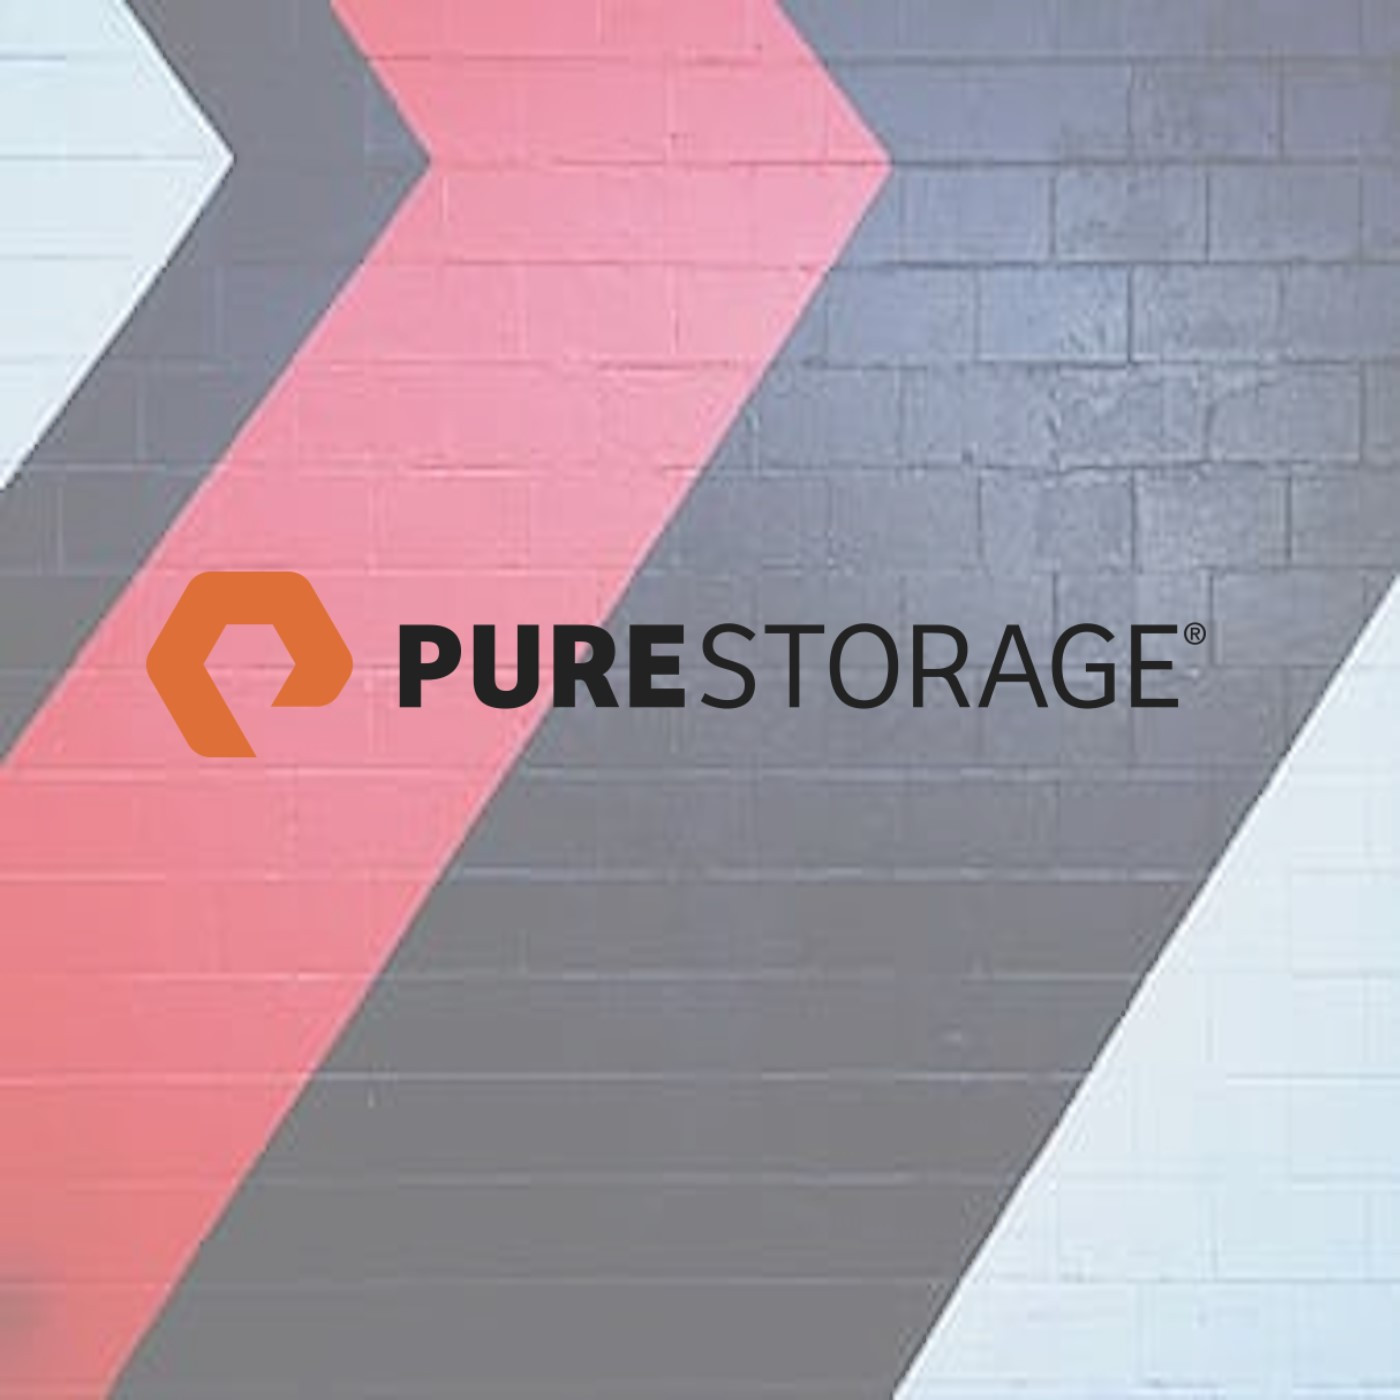 Entretien avec Hugues Heuze - Area Vice President & Country Manager France @Pure Storage